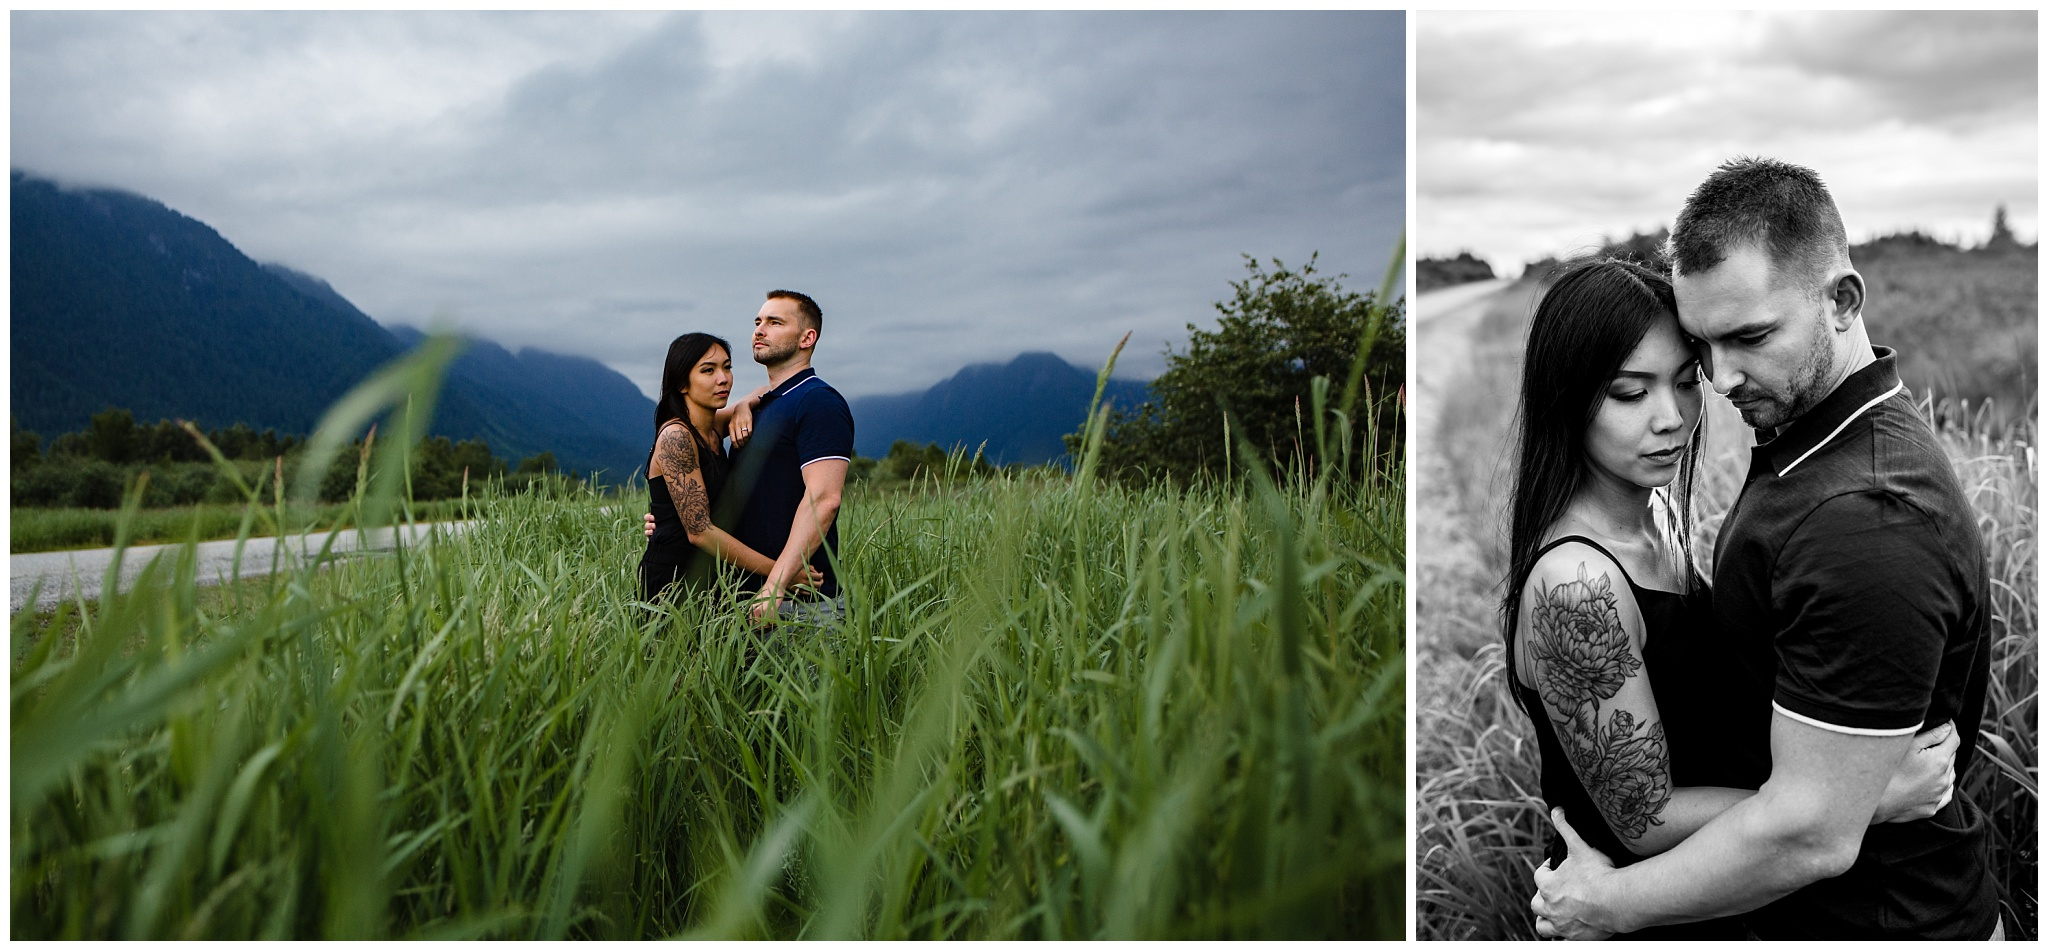 Pitt Lake Engagement Photos Maple Ridge Candid Fun Romantic Couples Photography_0021.jpg